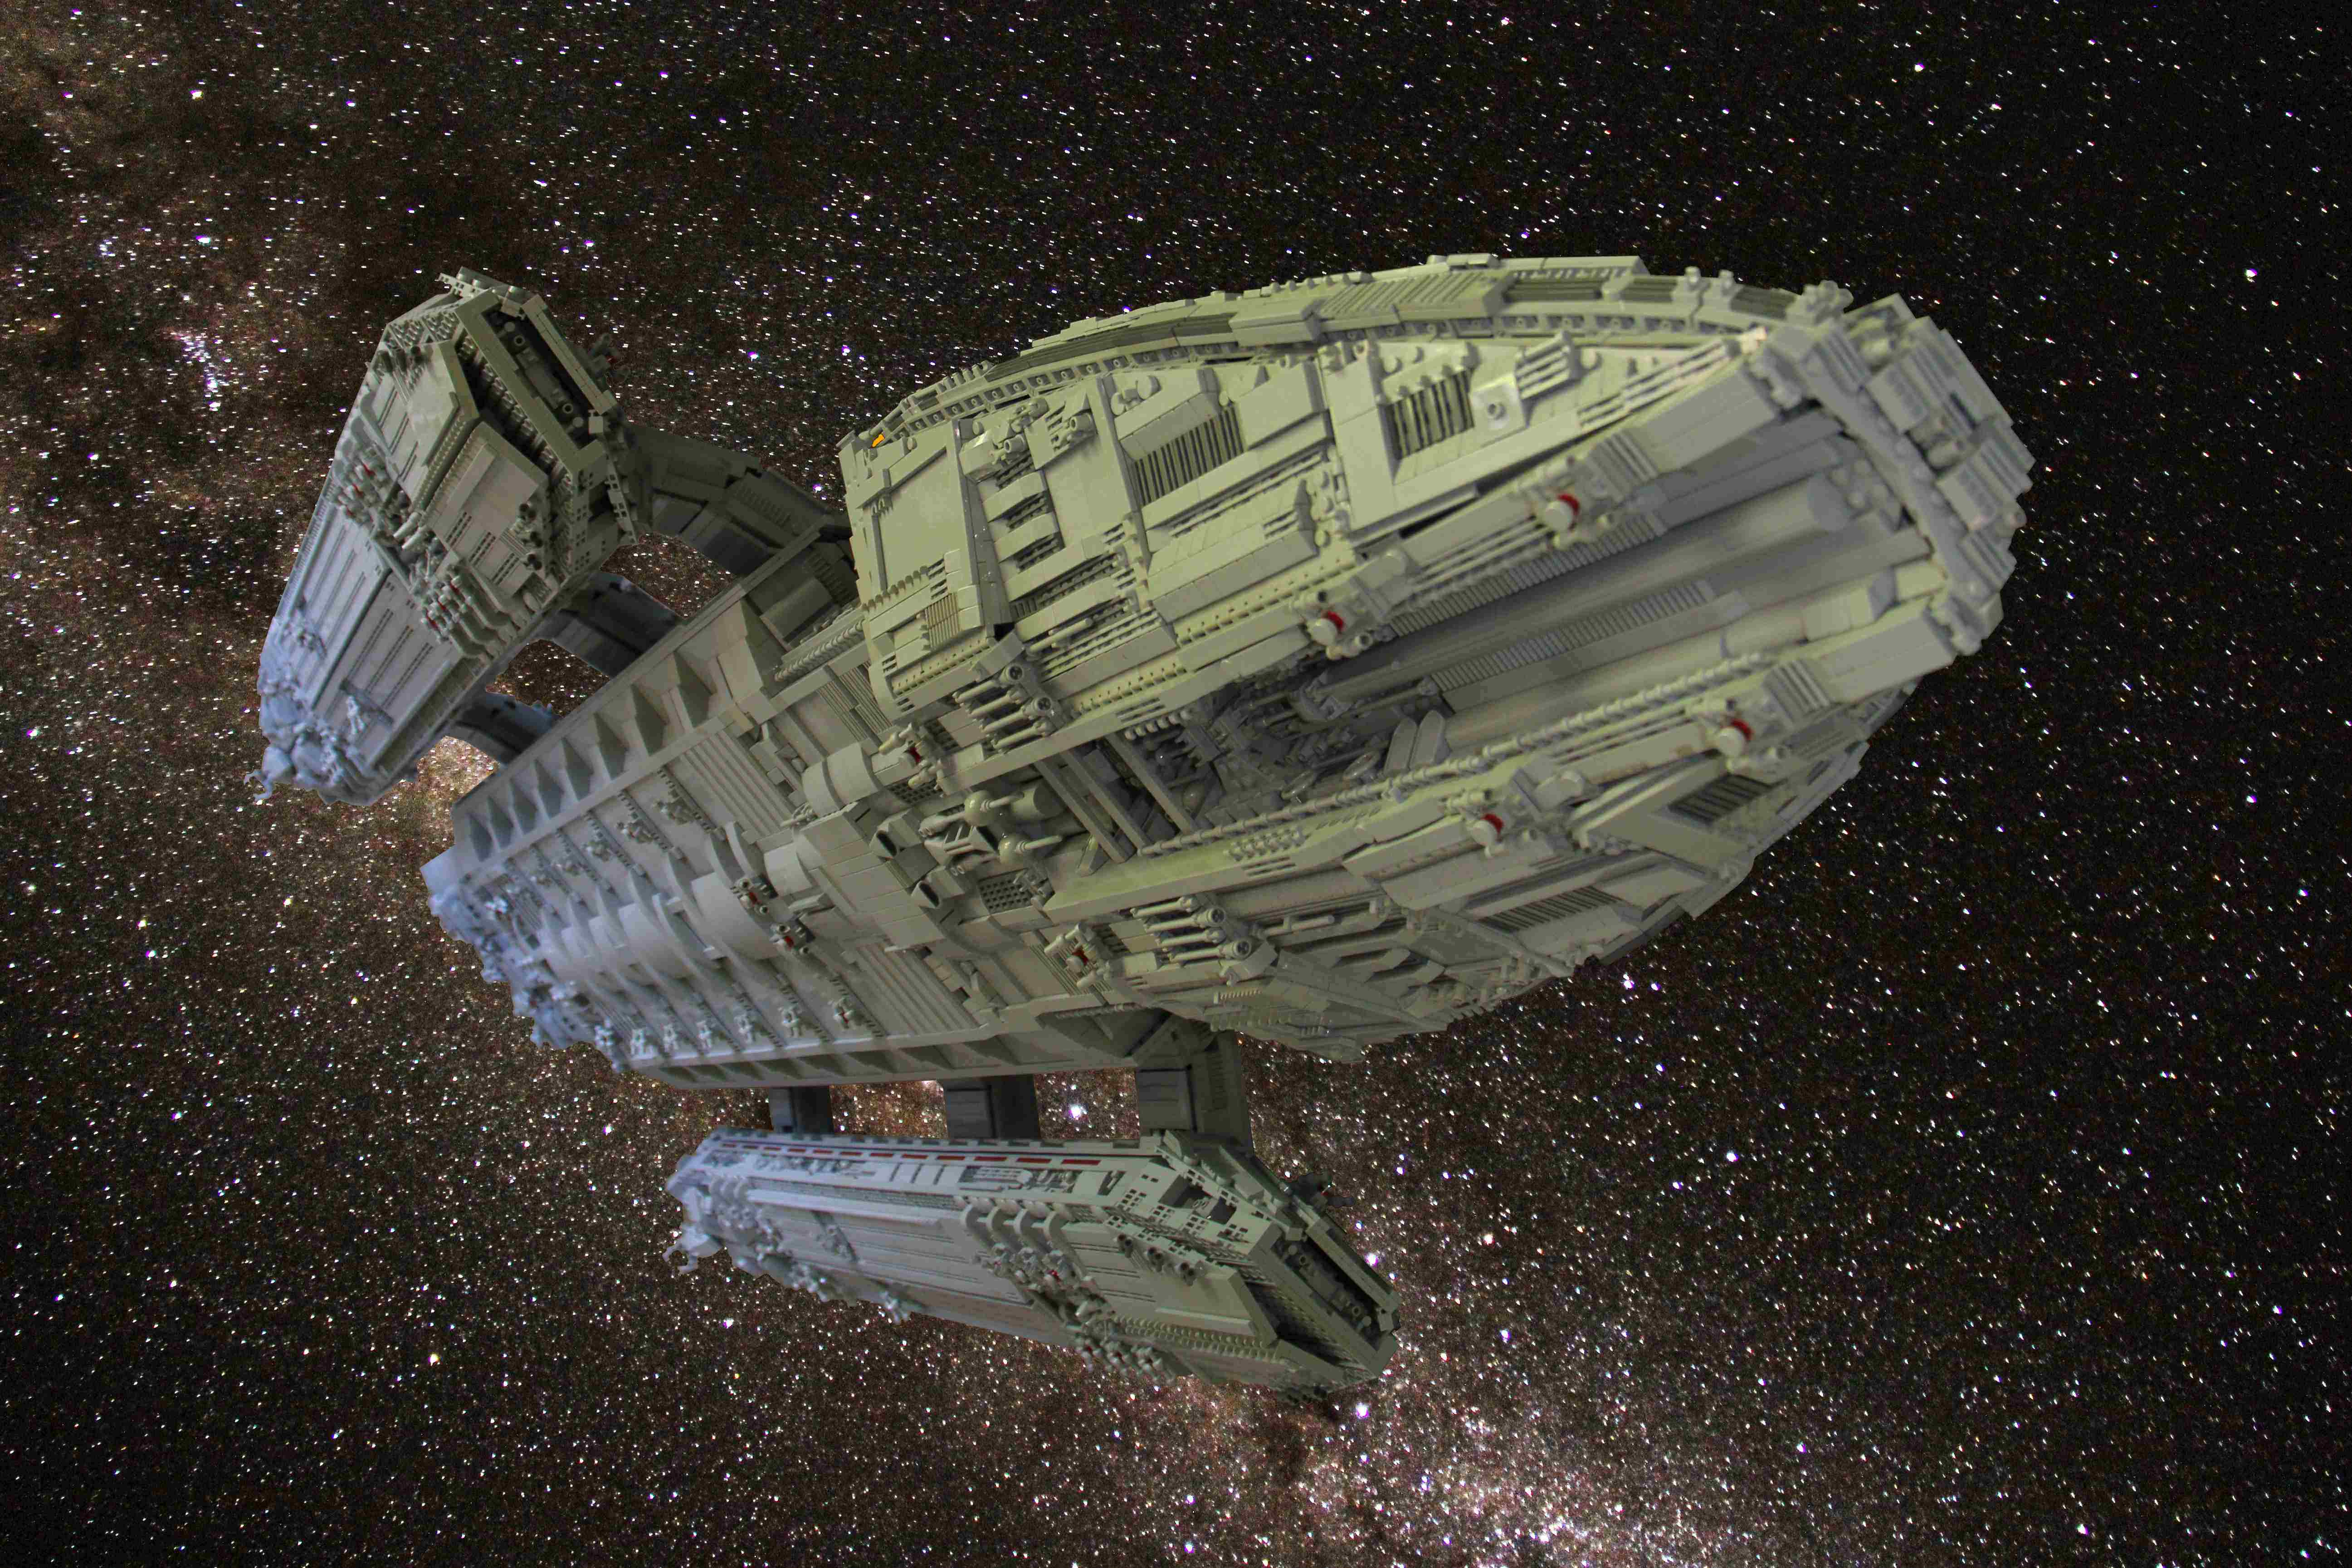 galactica_and_milky_way_024.jpg